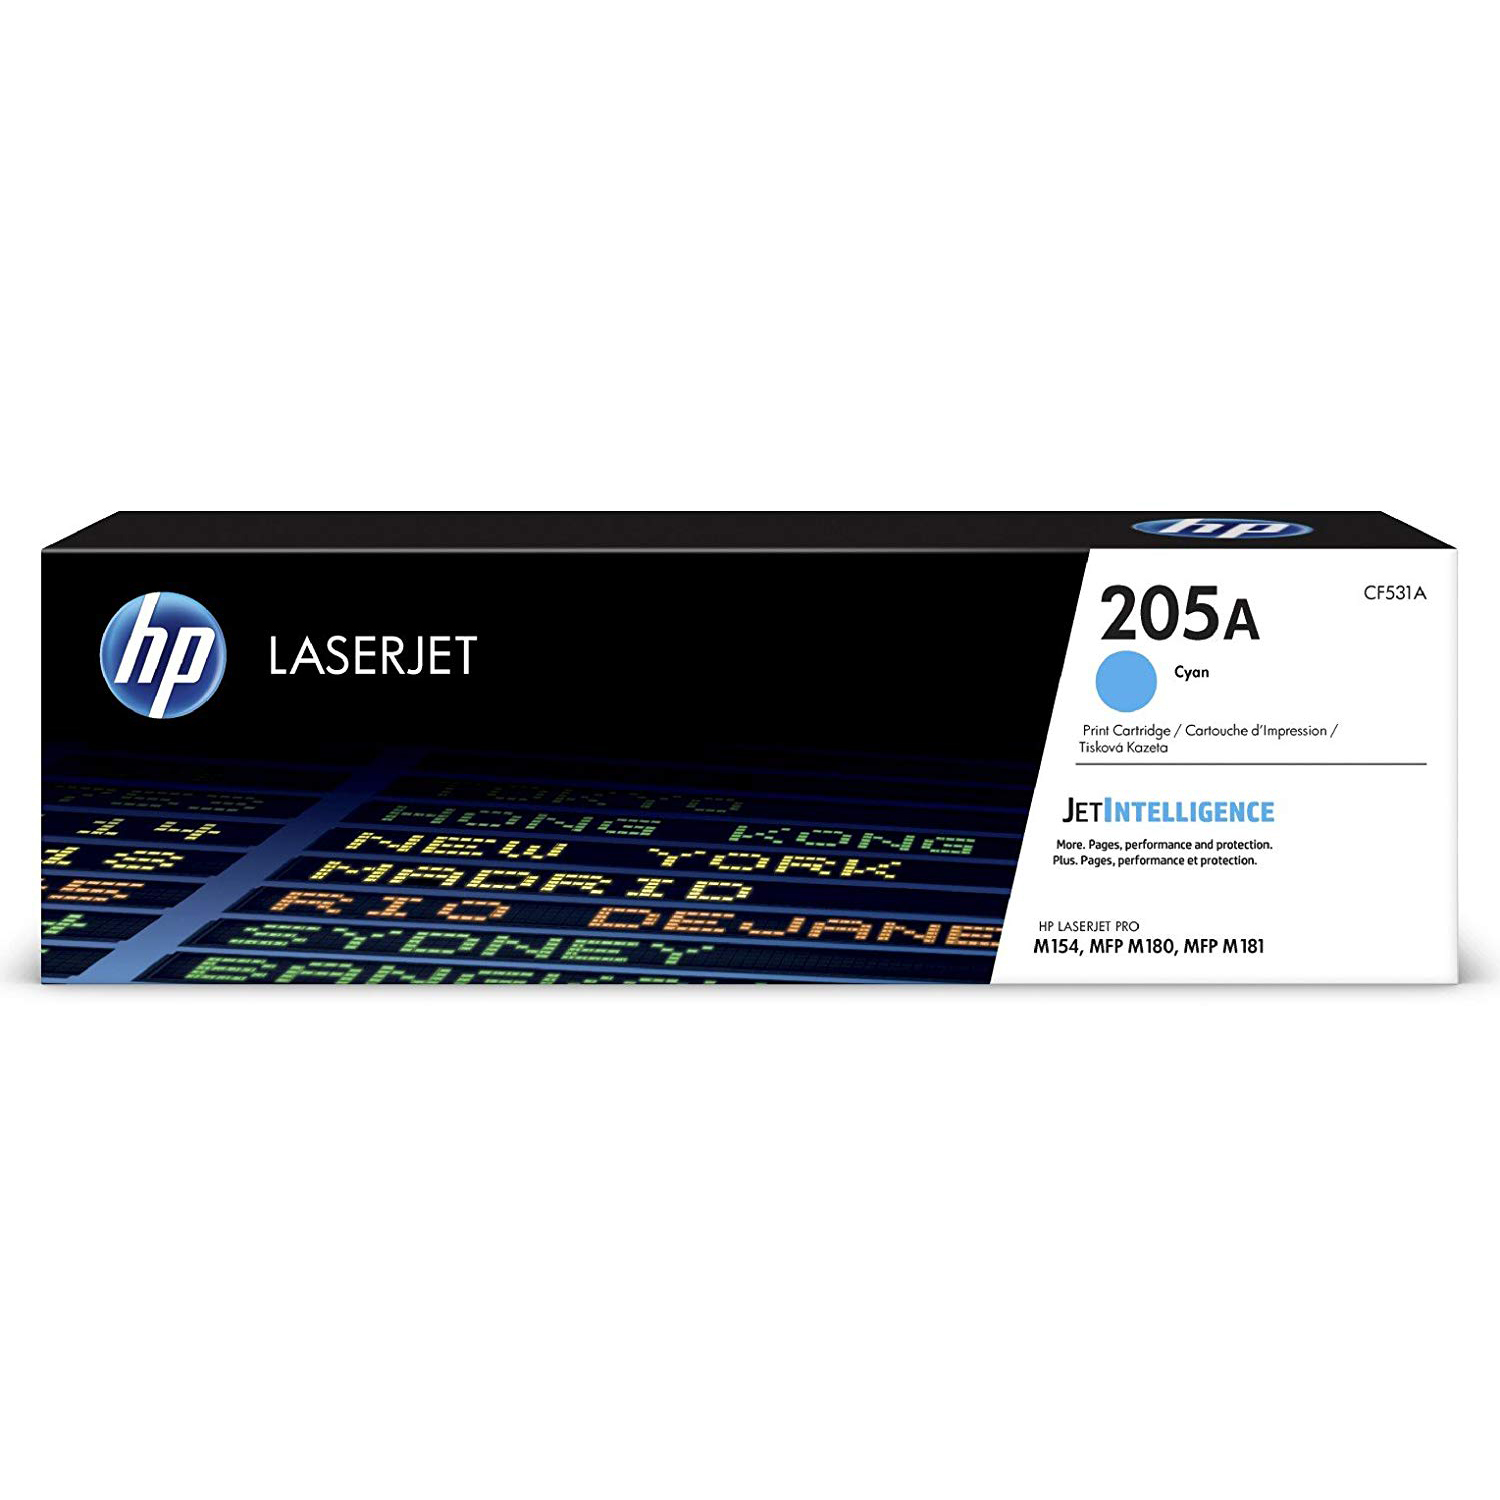 HP 205A (CF531A) Toner Cartridge - Cyan